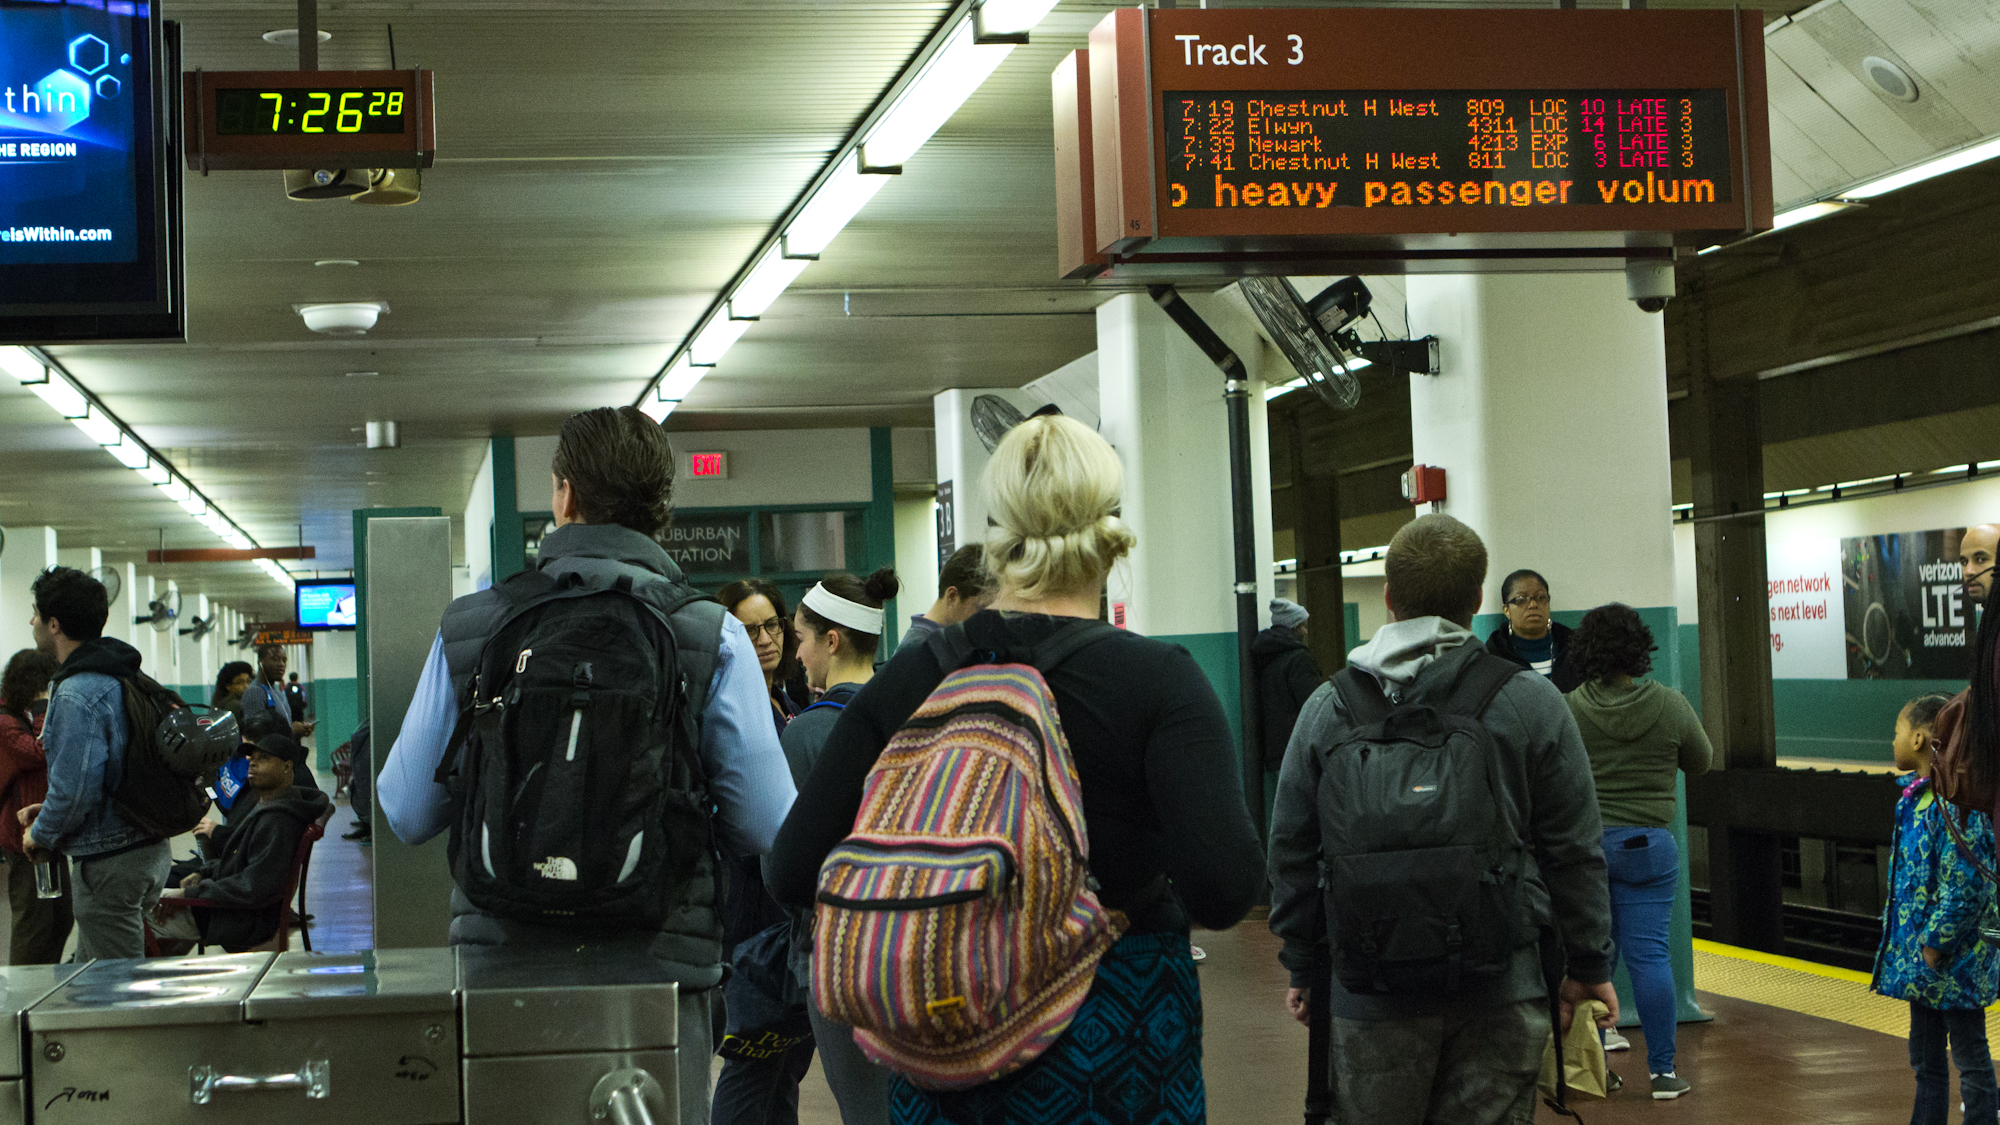 Commuters during SEPTA strike wait for slow Regional Rail trains | Kimberly Paynter / WHYY